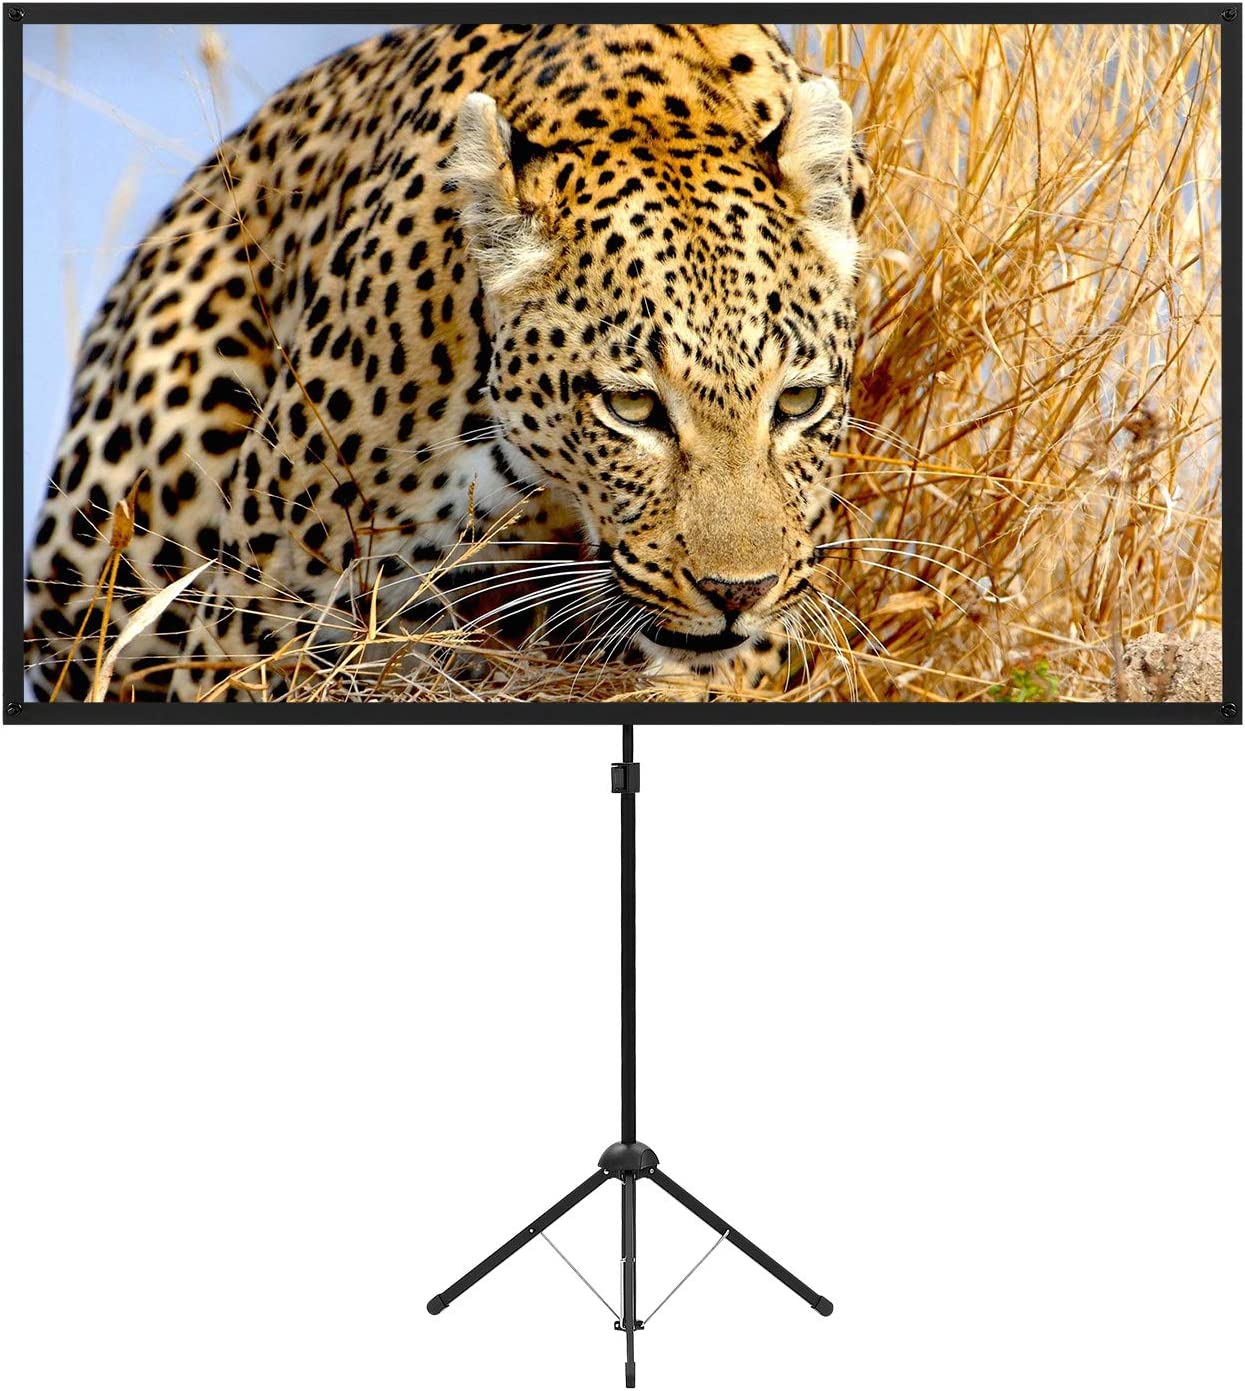 Portable Projector Screen with Stand, Outdoor Movie Screen, 80 Inch 16:9 Light-Weight, Mobile and Compact, Easy Setup and Carrying, Projection Screen with 1.2 Gain Glass Fiber, Idea for Home Cinema